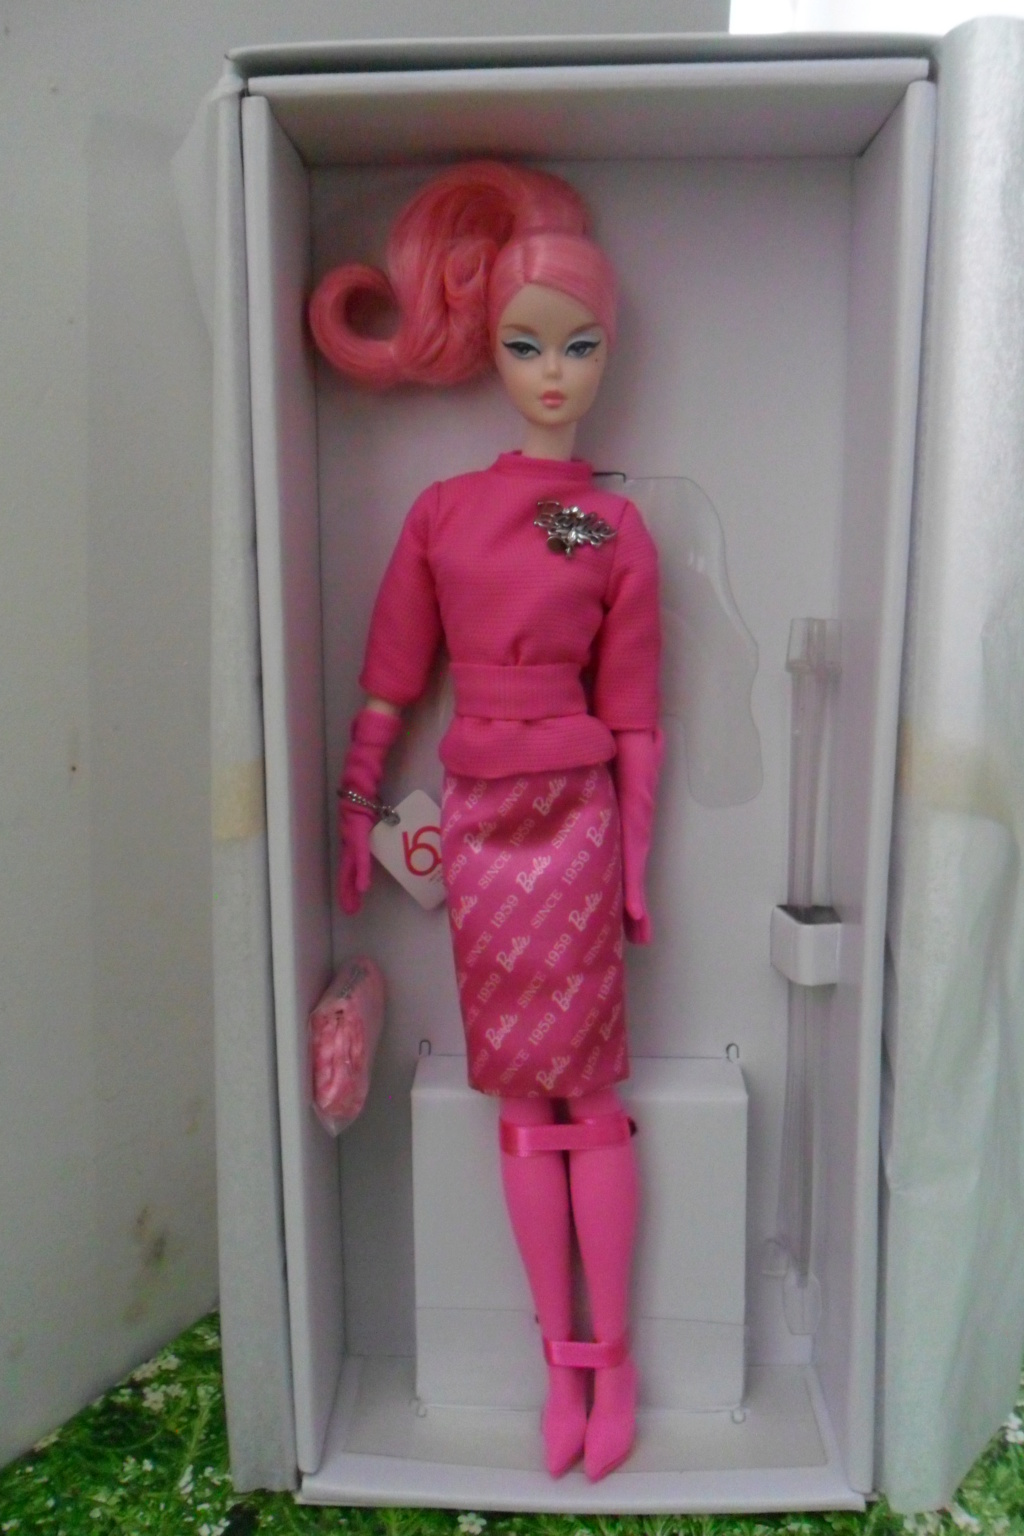 Mon premier amour poupesque : Barbie (Marni Senofonte, X Files et fashionistas) - Page 5 Sam_9632